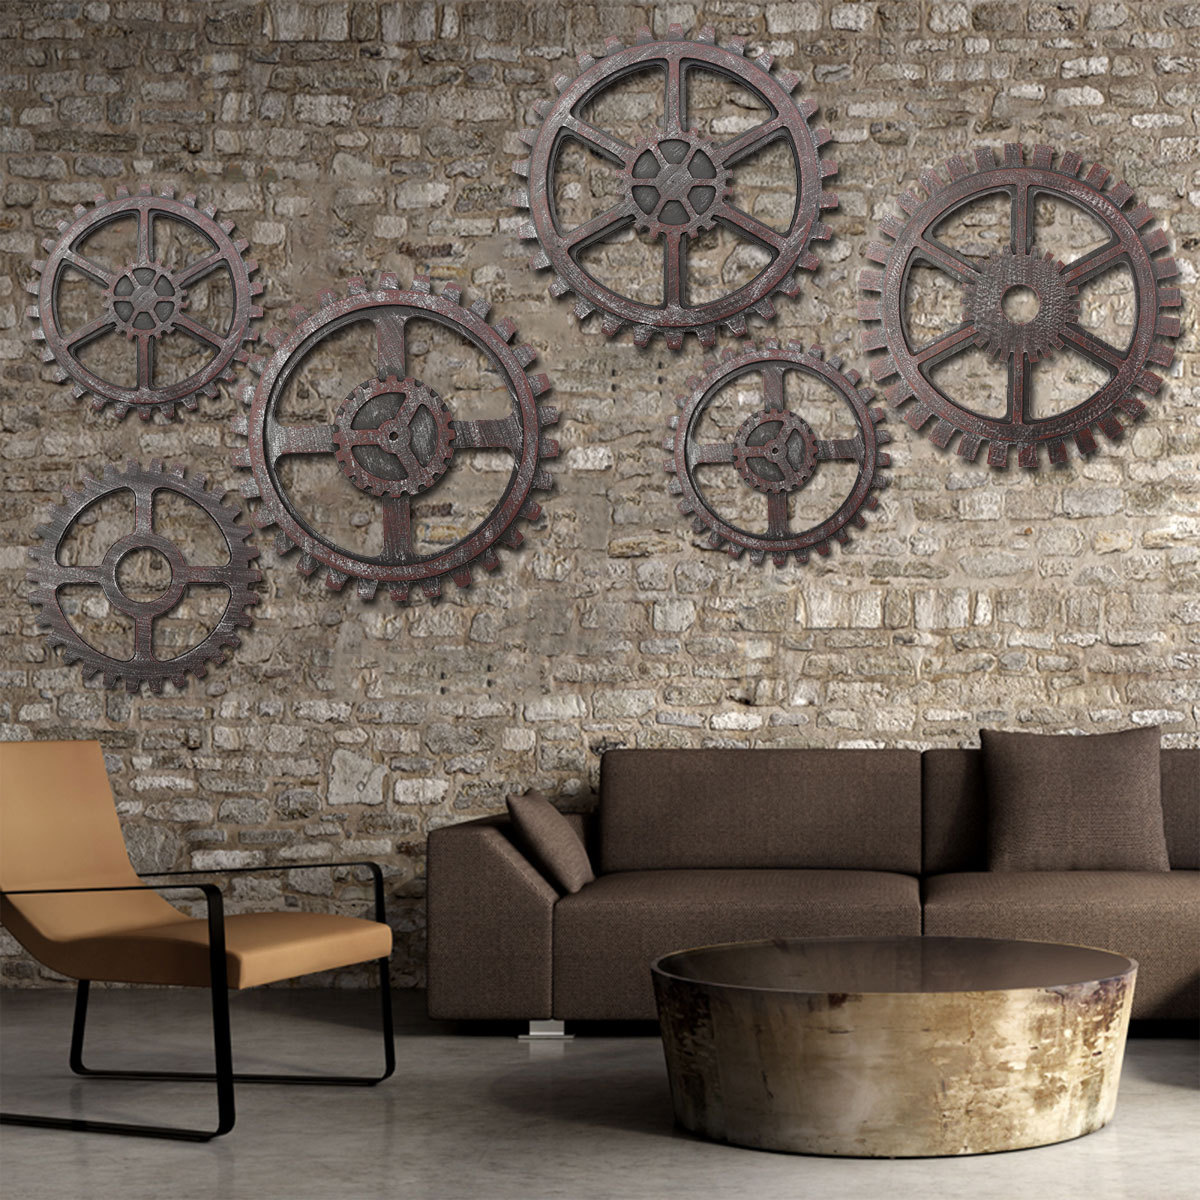 Wooden gear wall art industrial antique vintage chic for Antique wall decor